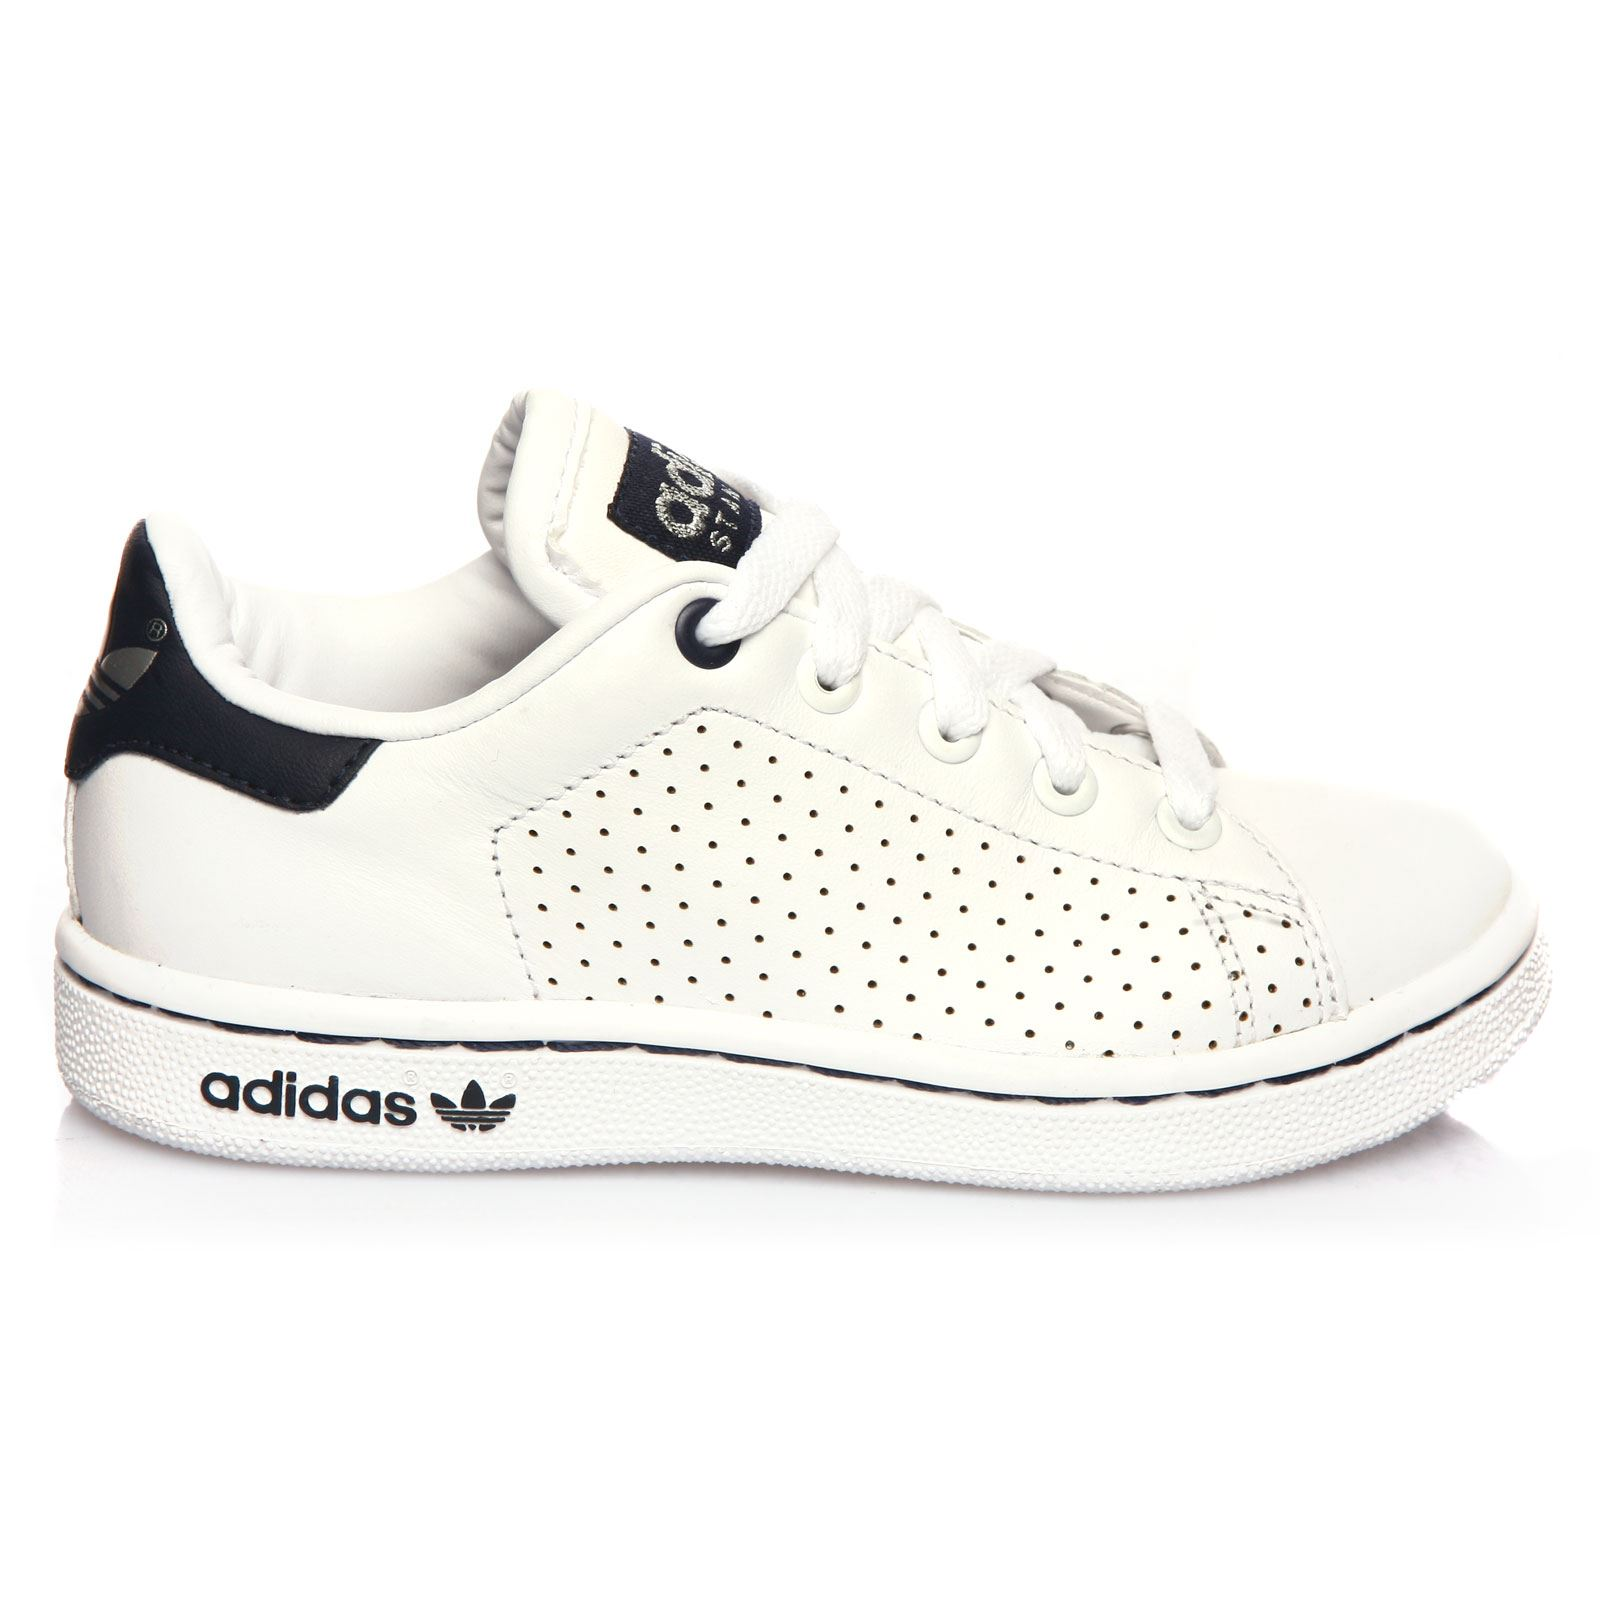 ADIDAS Adidas Stan Smith - Chaussures - blanches